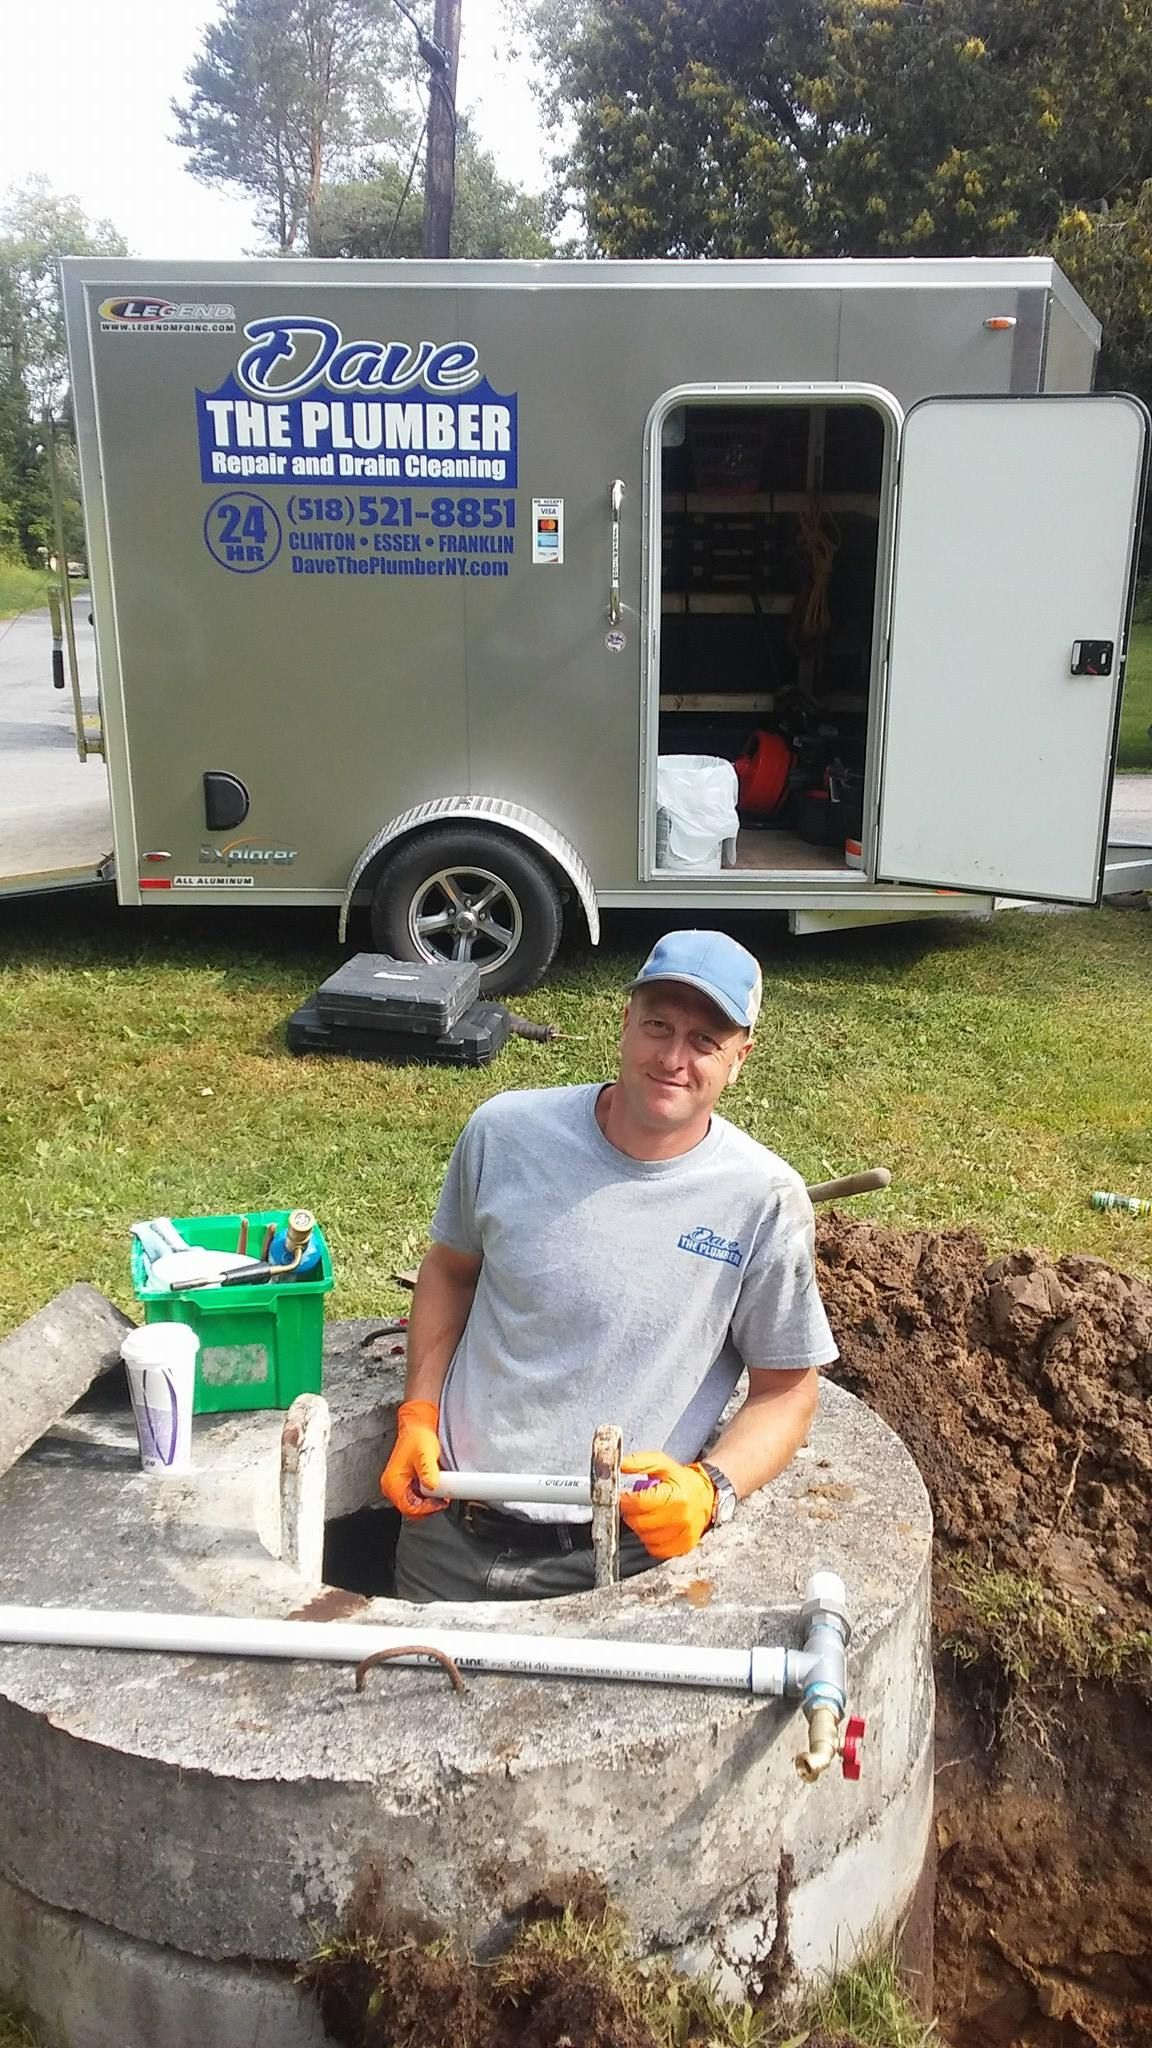 Dave The Plumber working on well pump